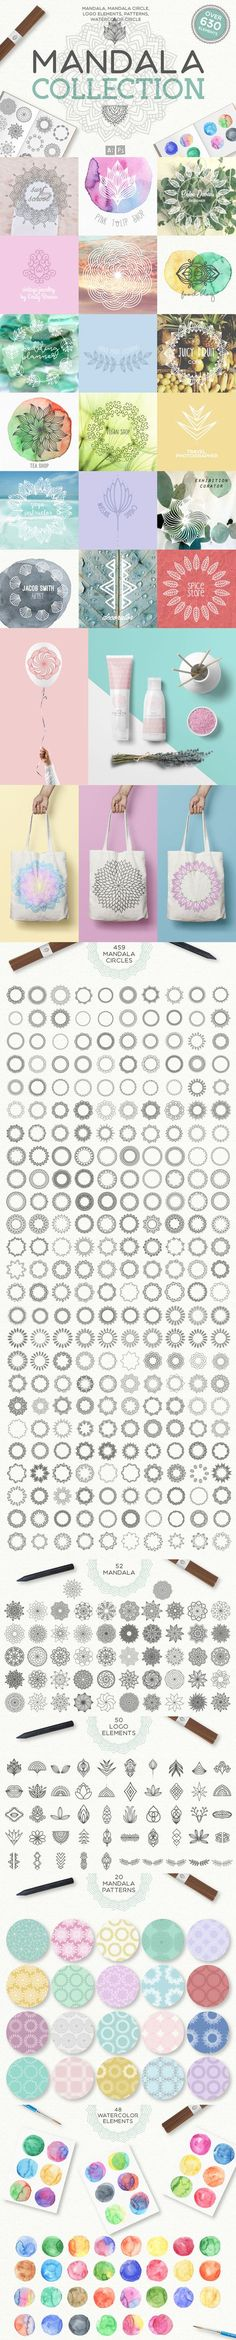 Mandala Collection - Over 630 Elements  In this #magical collection of more than 600 mandalas for every taste. Be sure to click on the image to see all toolkit.  Are you a #vintage jeweler or a #wedding planner? Or if you have a surf school or a #flowers #shop? Maybe you a #yoga instructor or a decorator? Create a #logo or #branding of their dreams. You can easily combine mandala and #watercolor circle. Or simply add mandala circle on your photo.